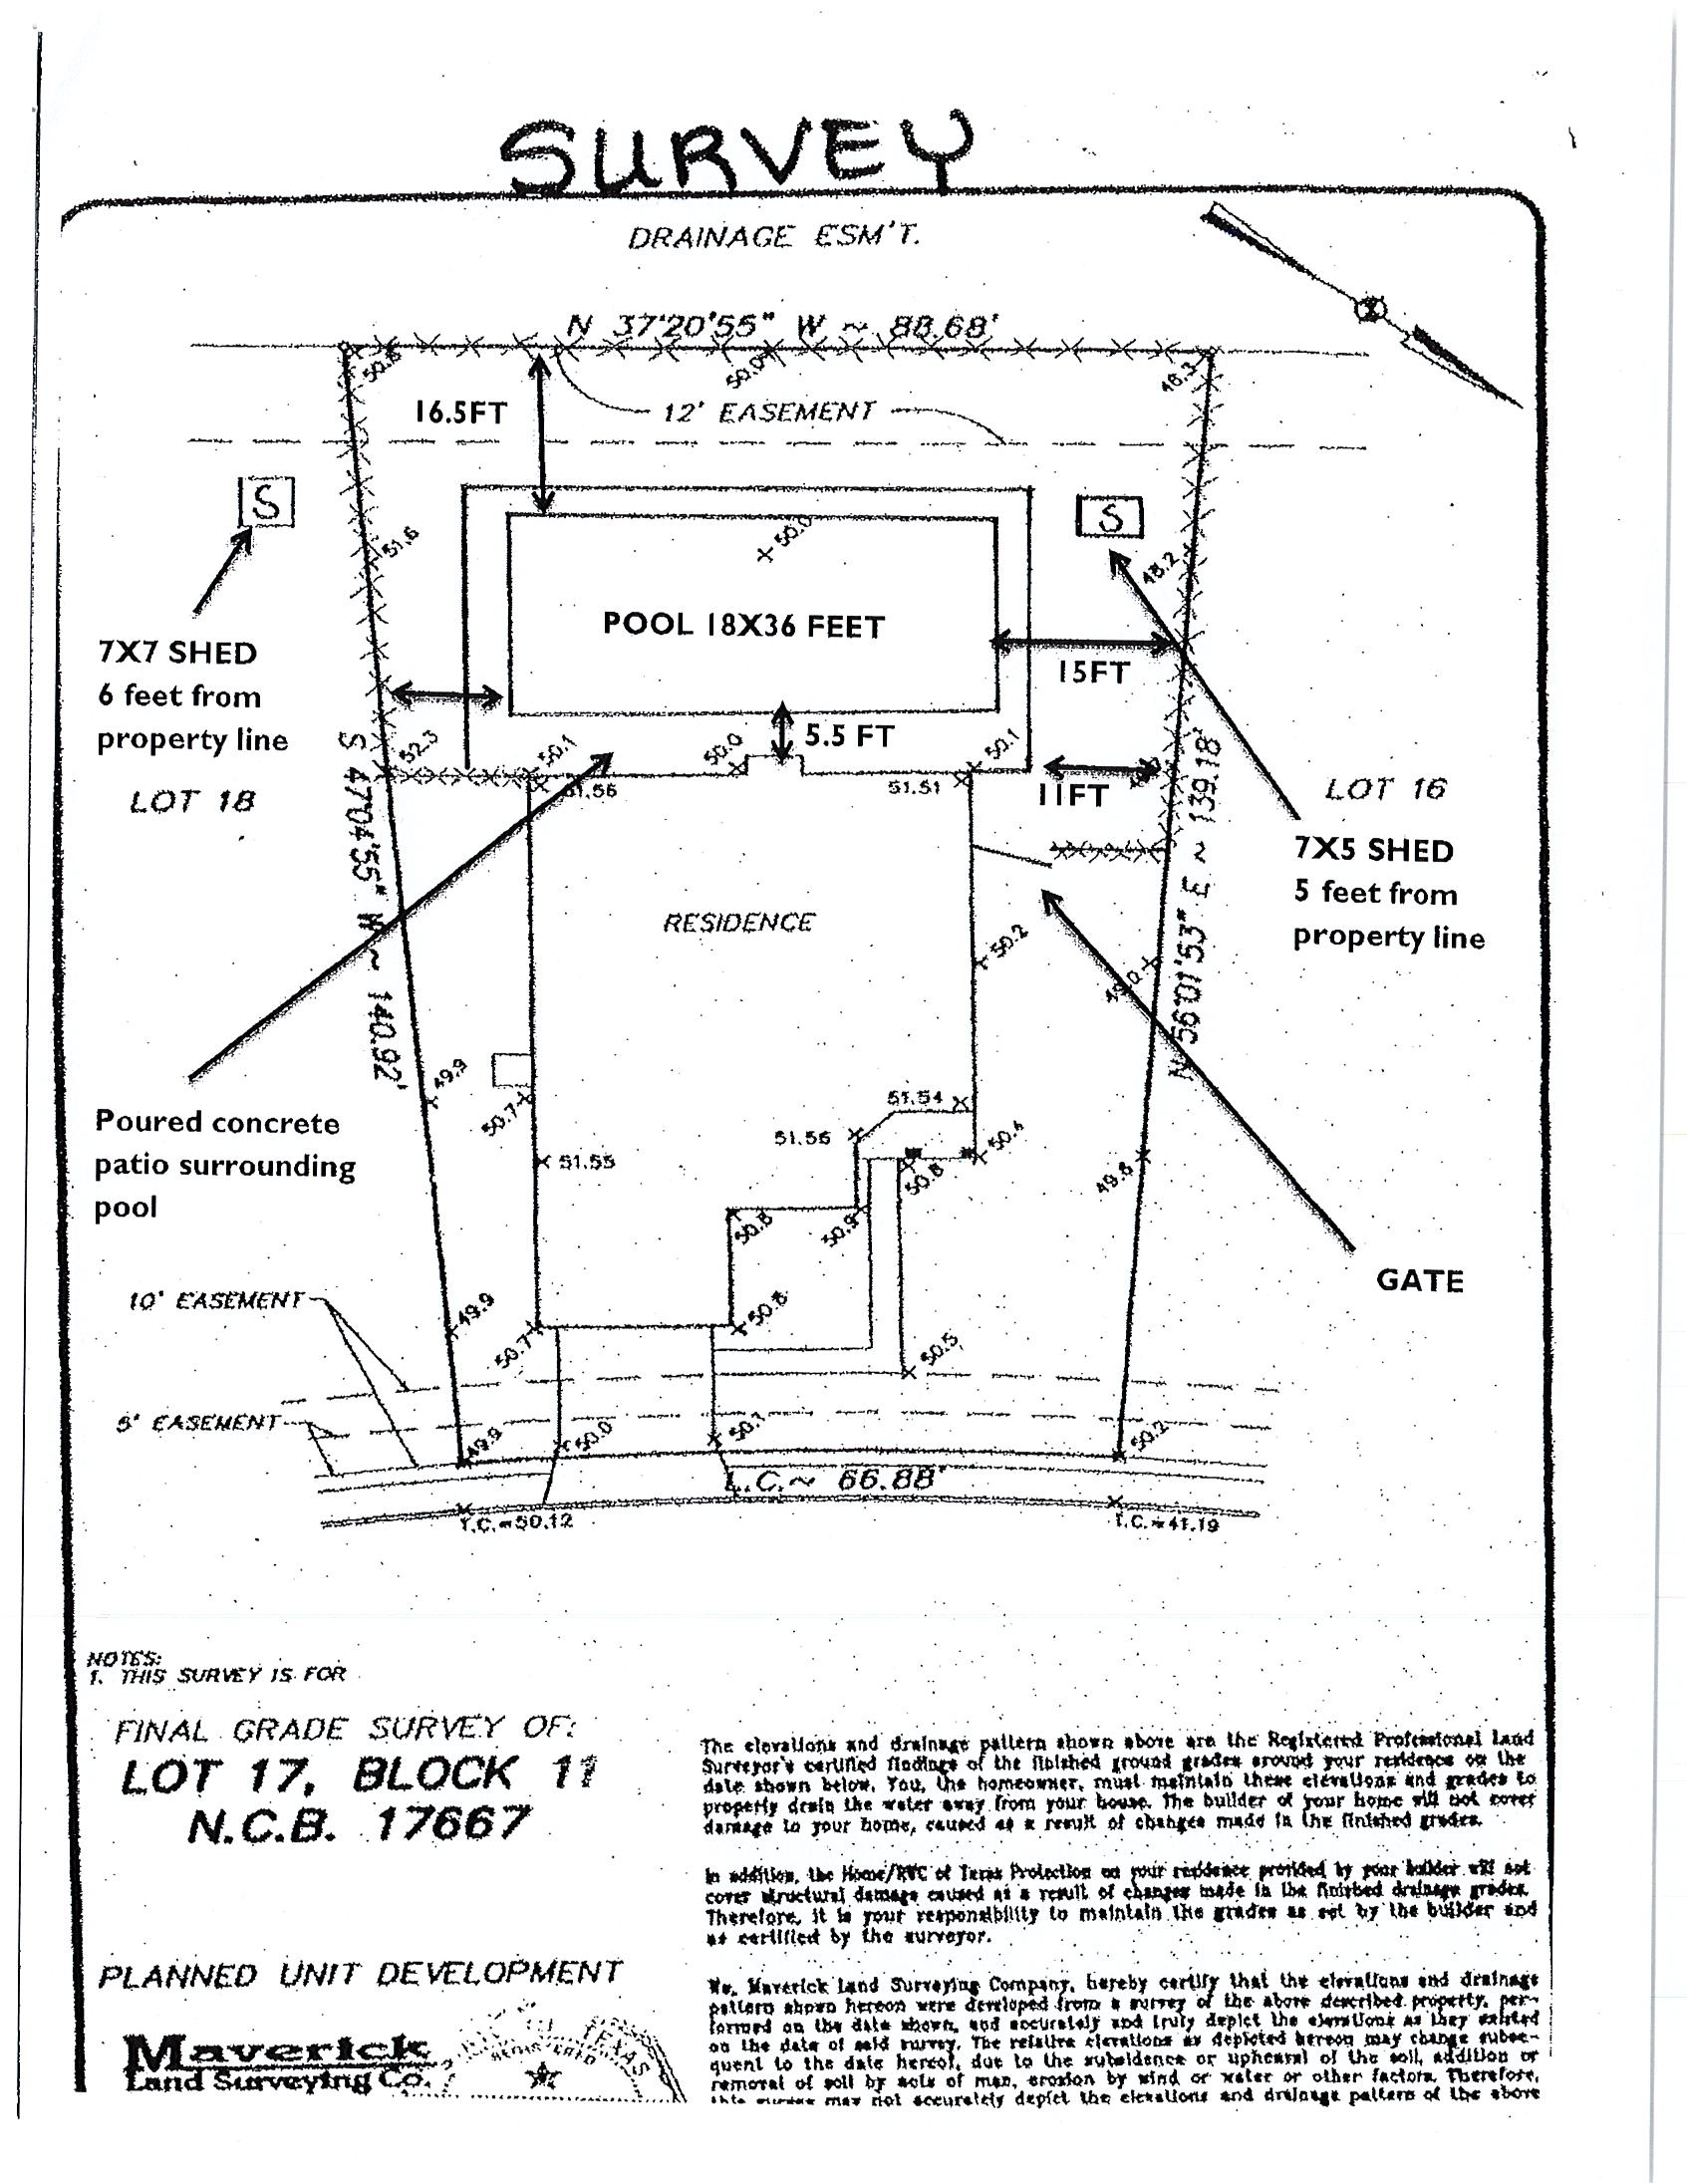 example of a survey drawing